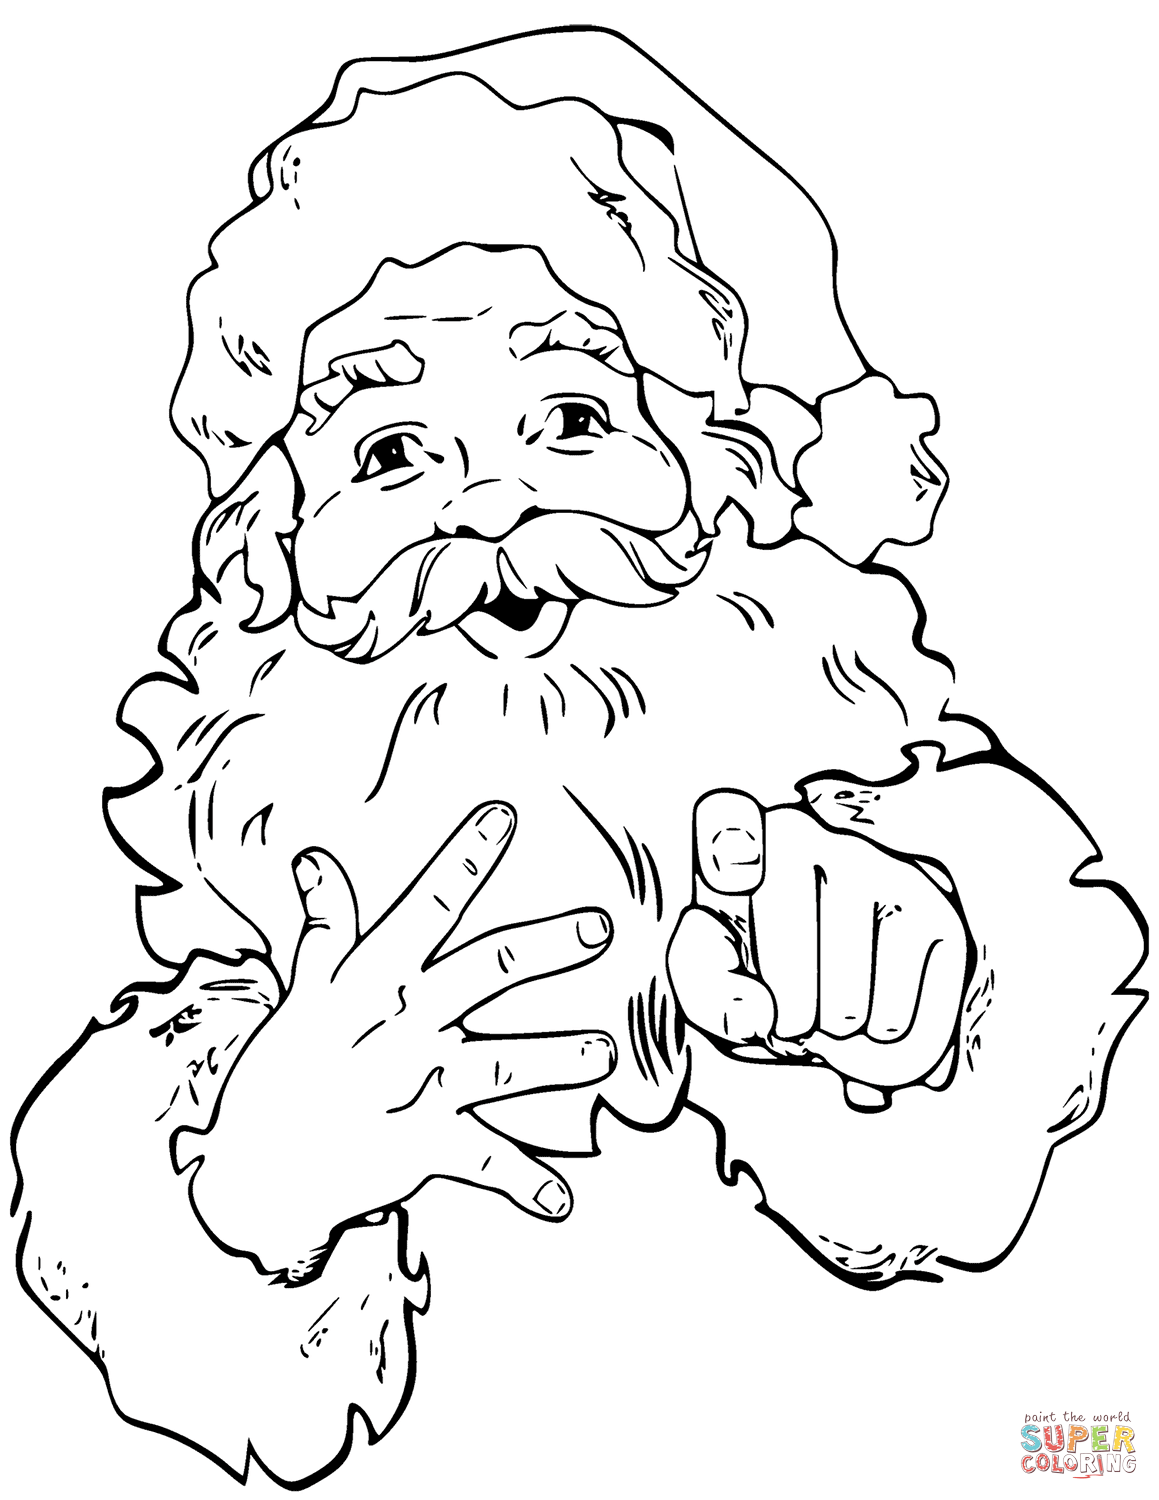 Santa Beard Coloring Page With Claus Is Pointing Finger Free Printable